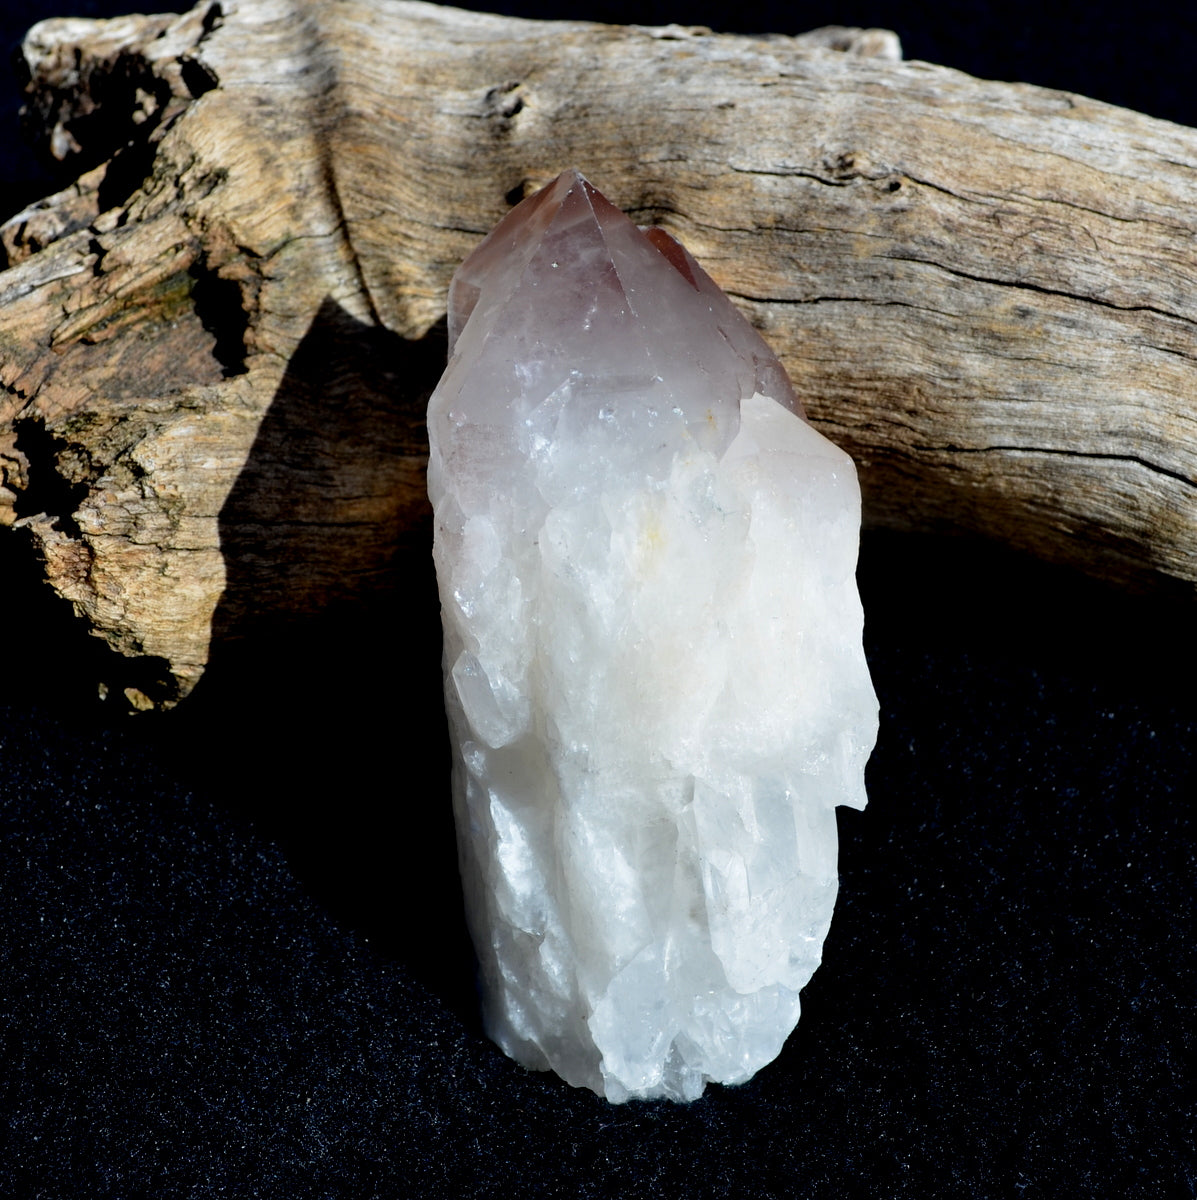 Lithium Candle Quartz - Soothing Anxiety Calming Meditation - Shop Now at Illiom Crystals - Now with Afterpay